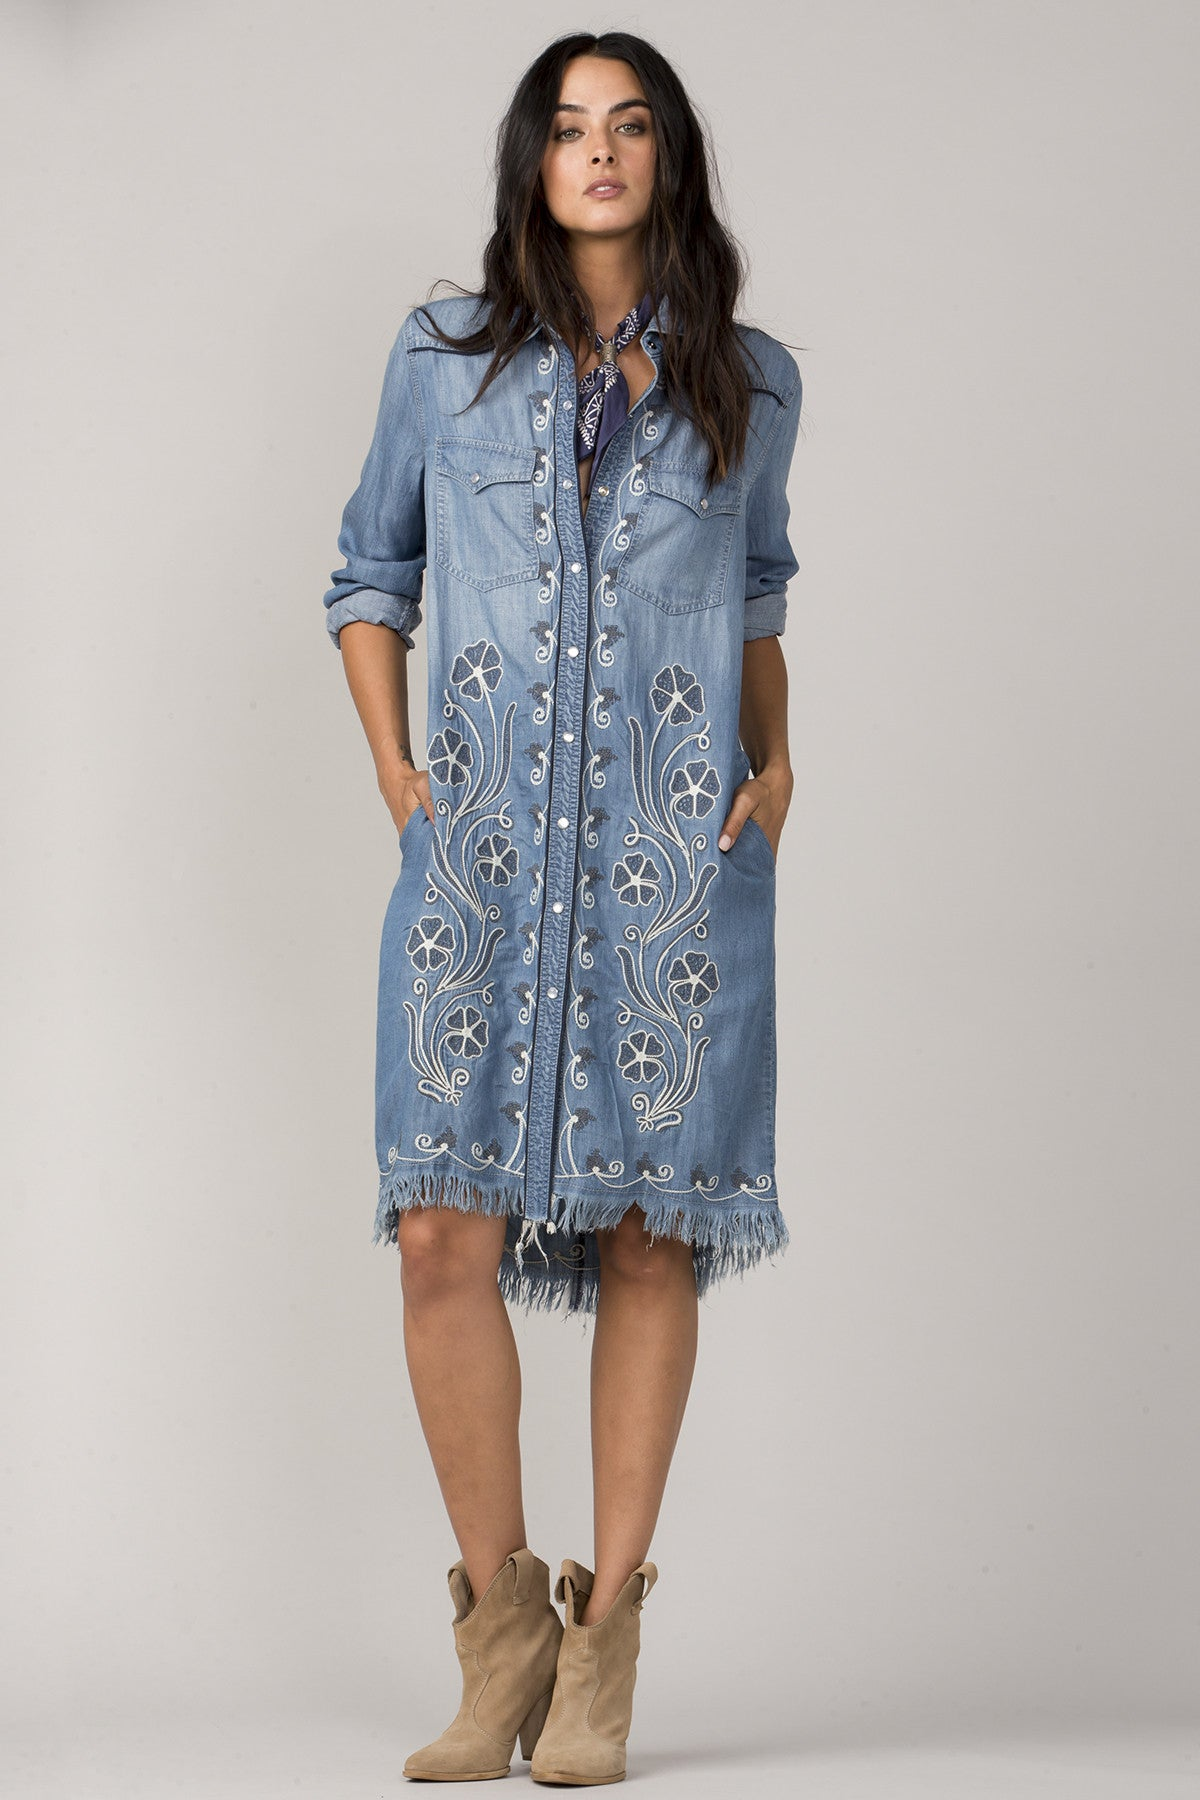 In Full Bloom Shirt Dress